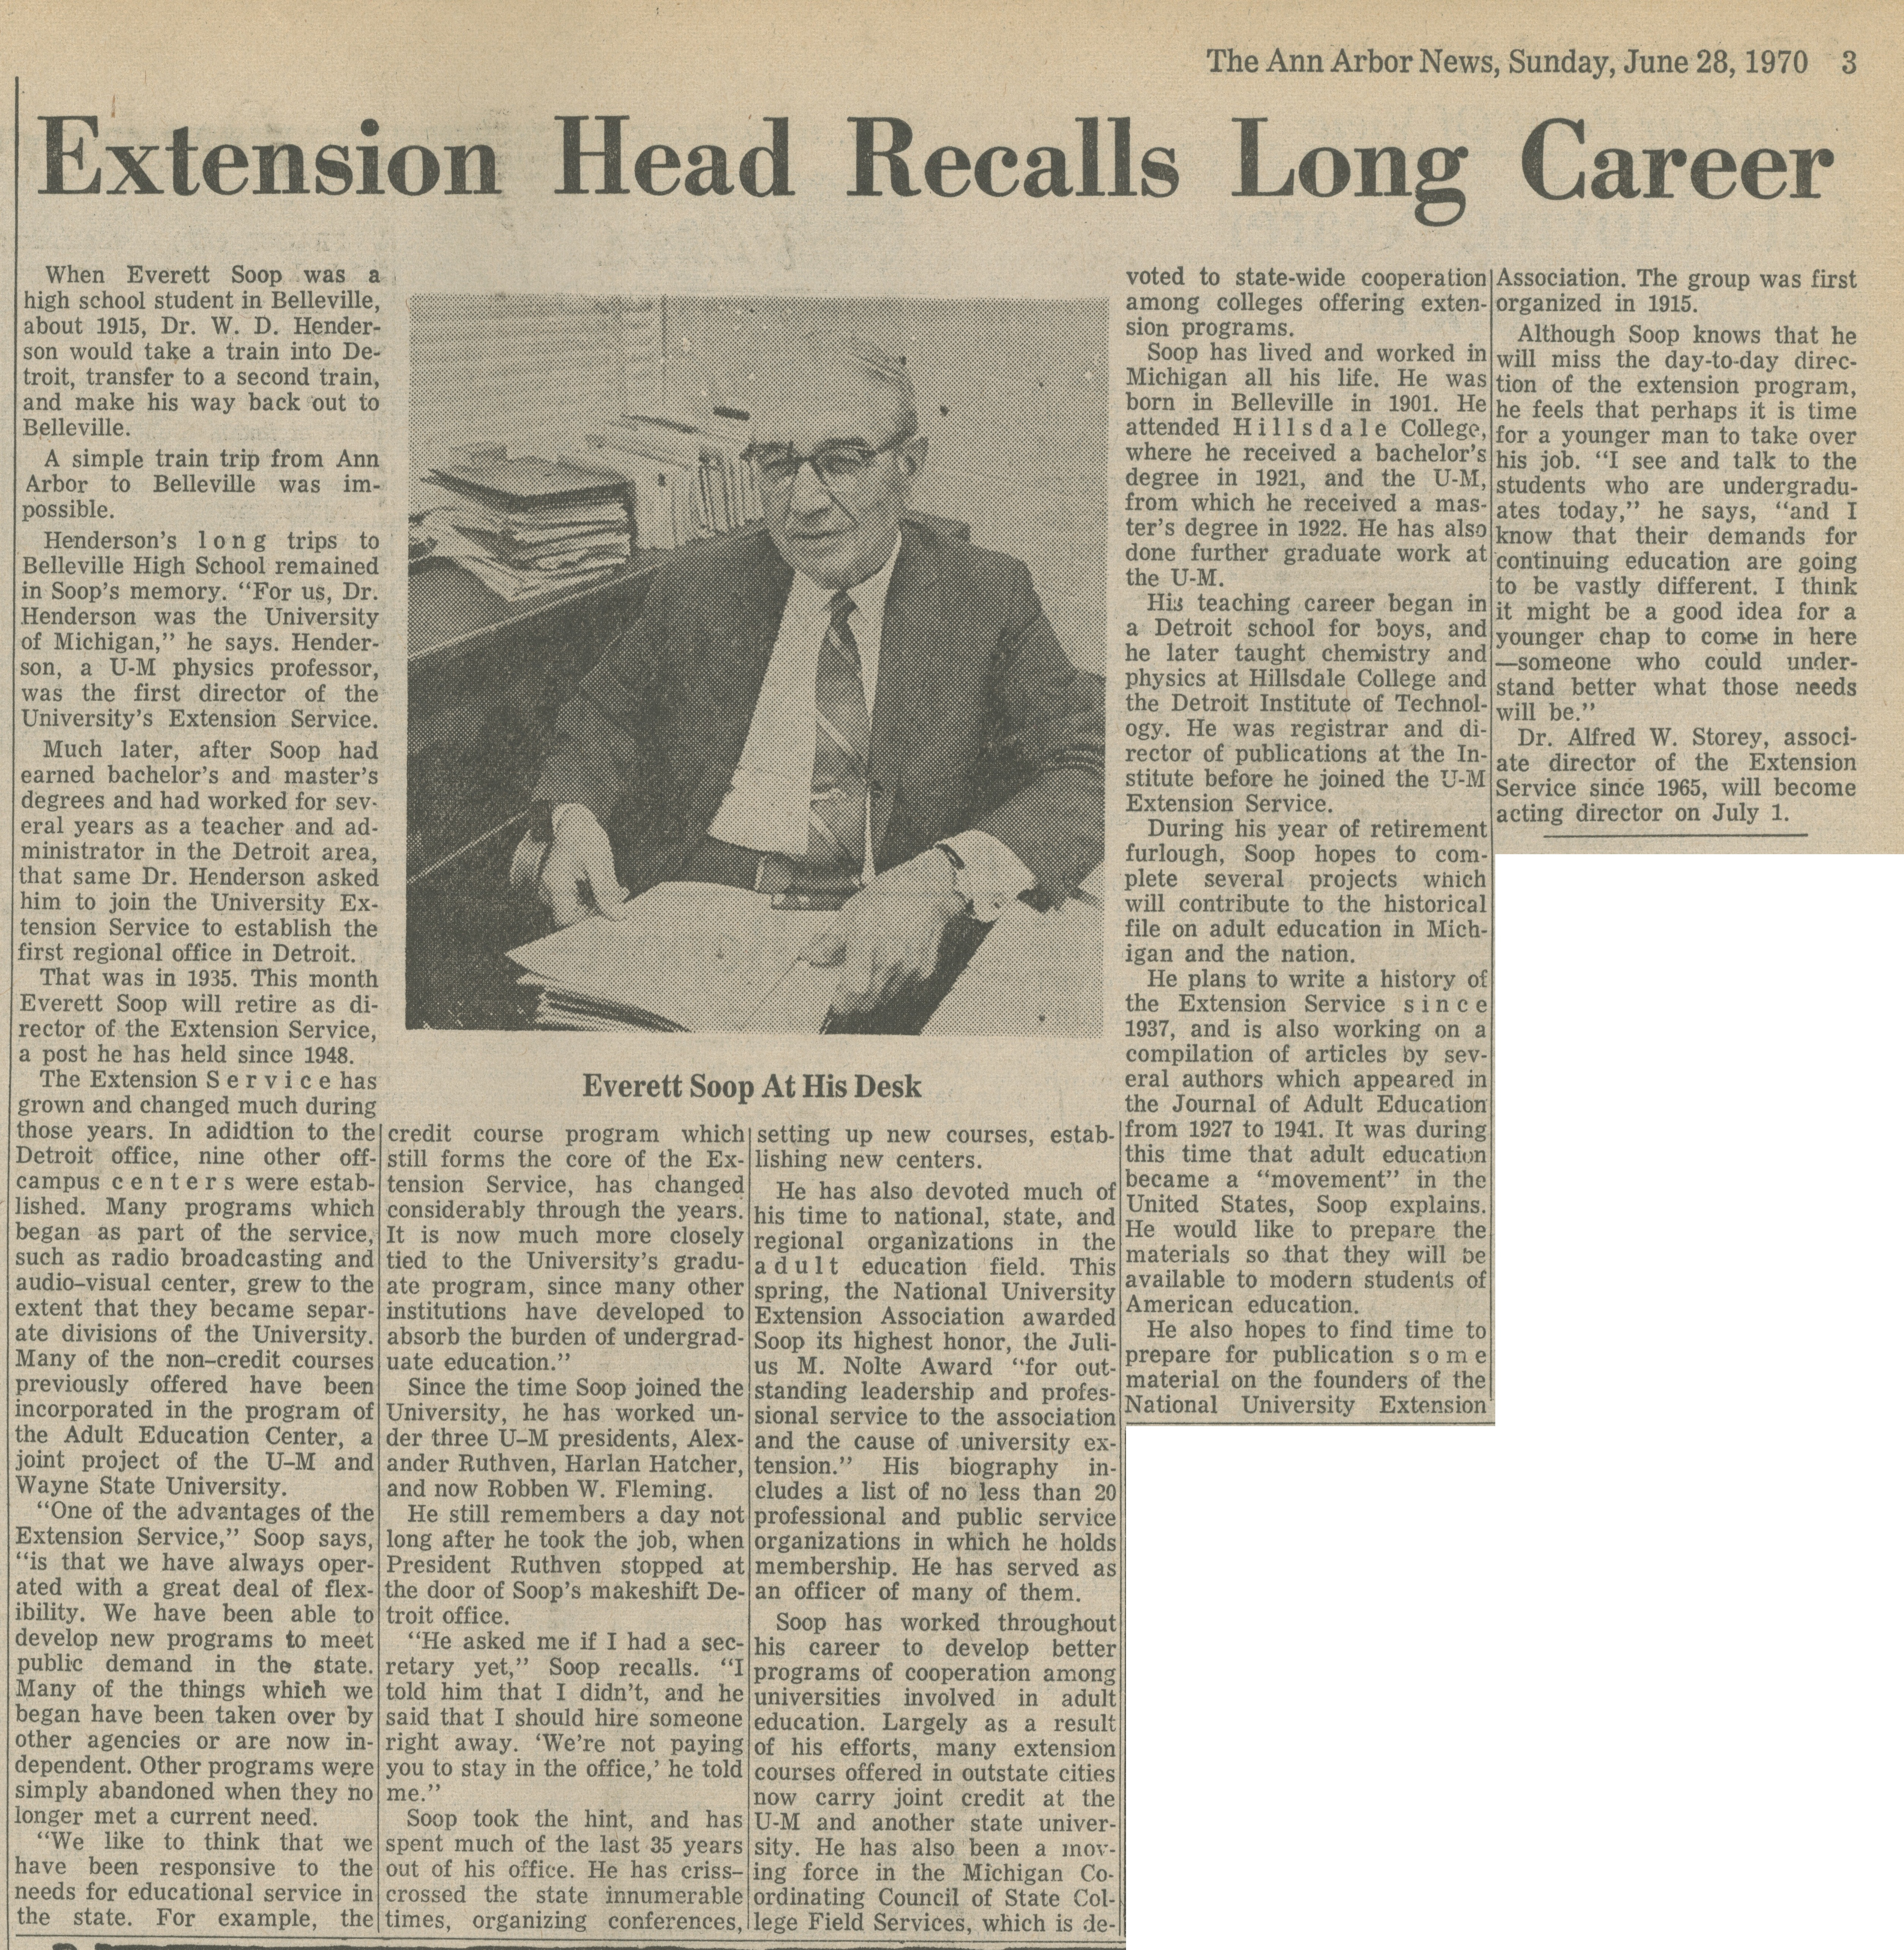 Extension Head Recalls Long Career image